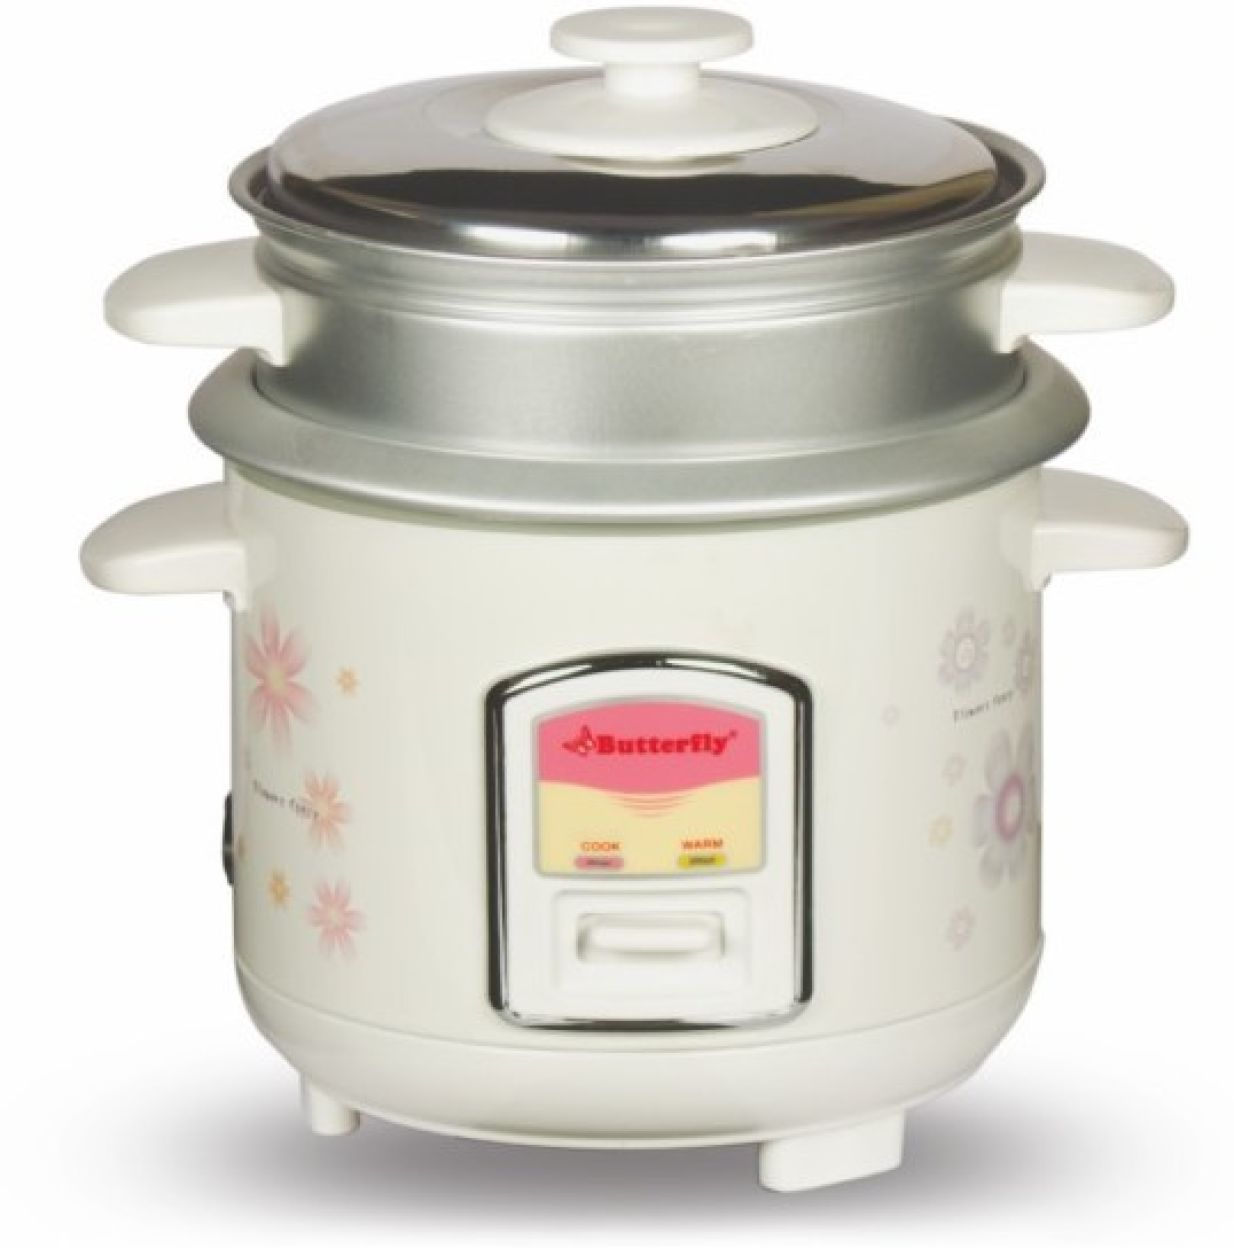 Topprice.in Price Comparison in India Electric cooker